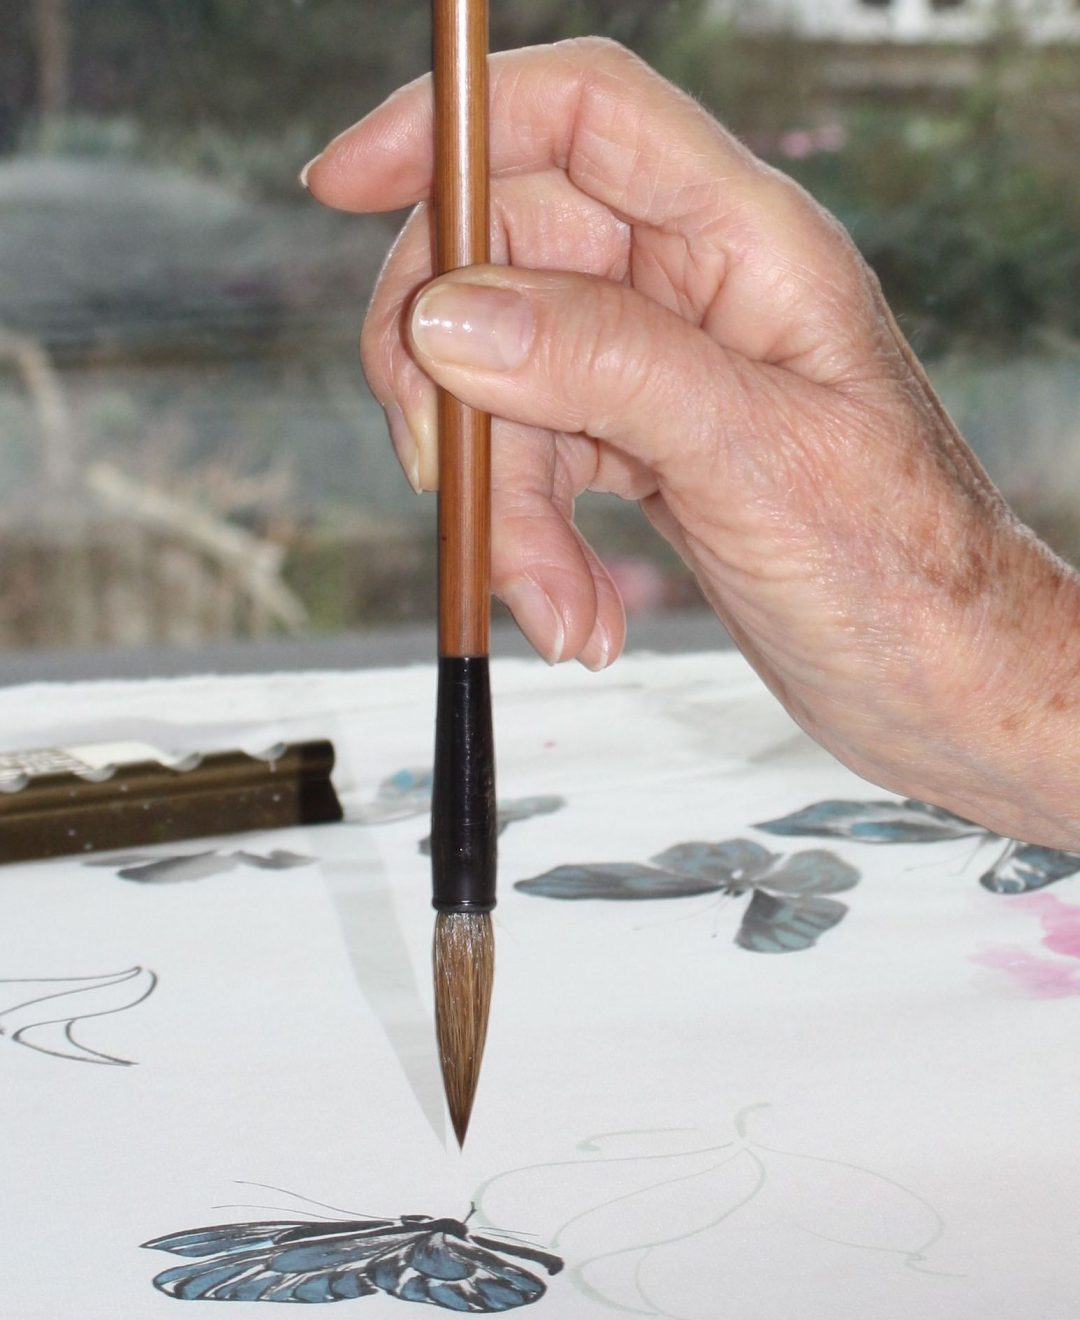 How to hold the brush for Chinese painting and calligraphy